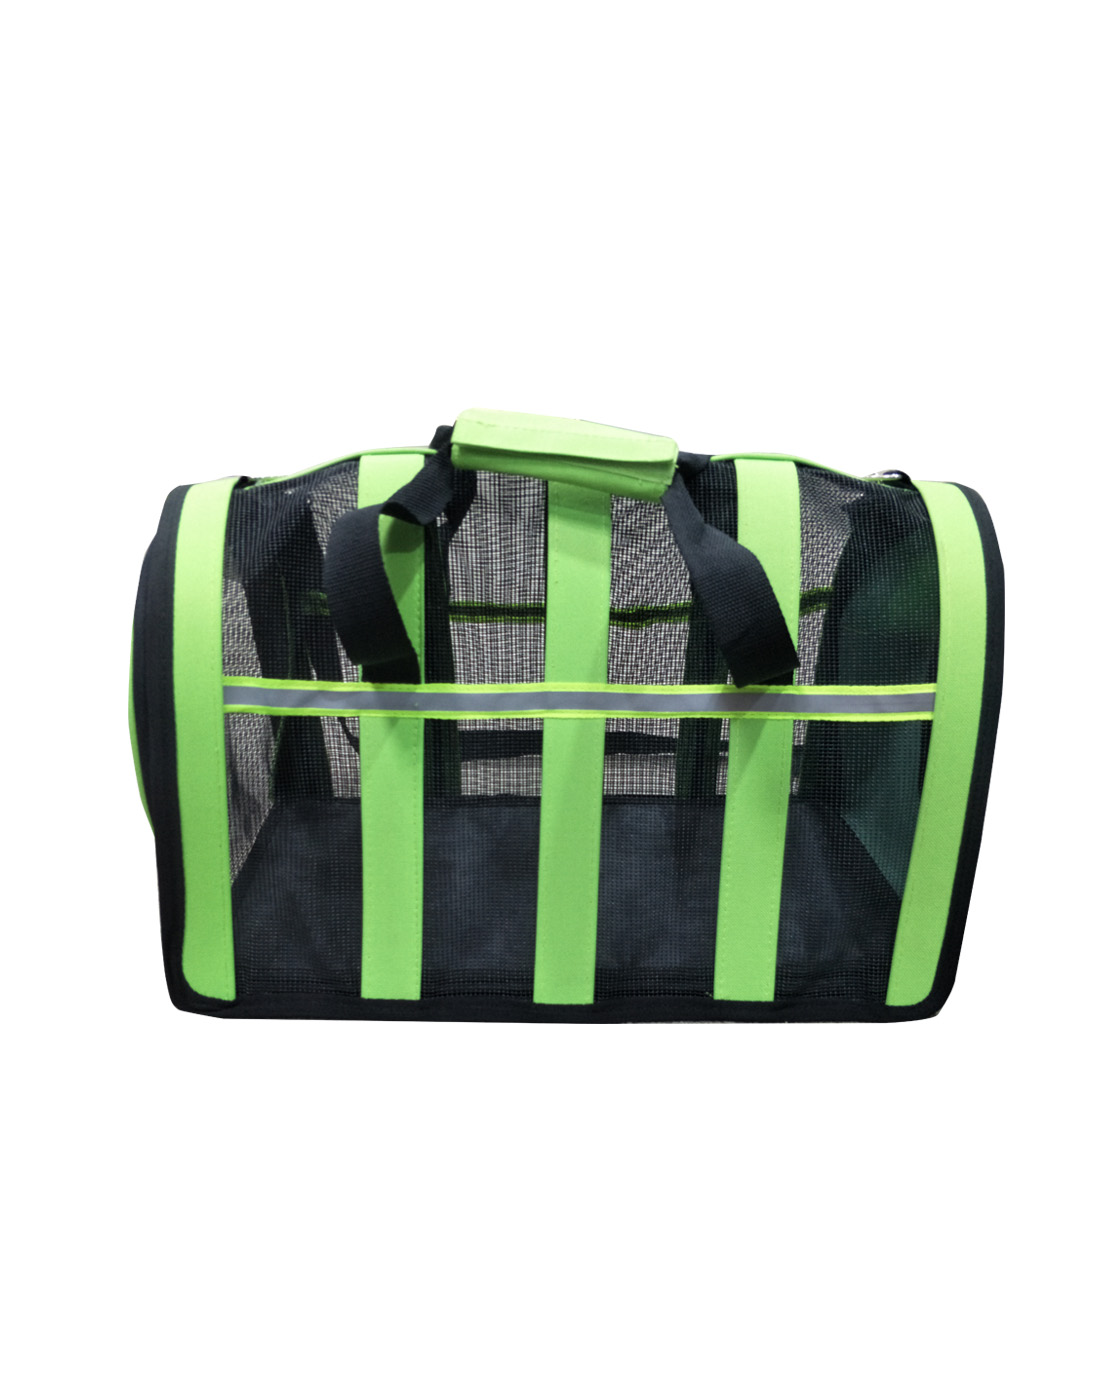 Portable Sided Pet Travel Carrier Dog Tote Bag Airline Pet Carrier for small dogs cats